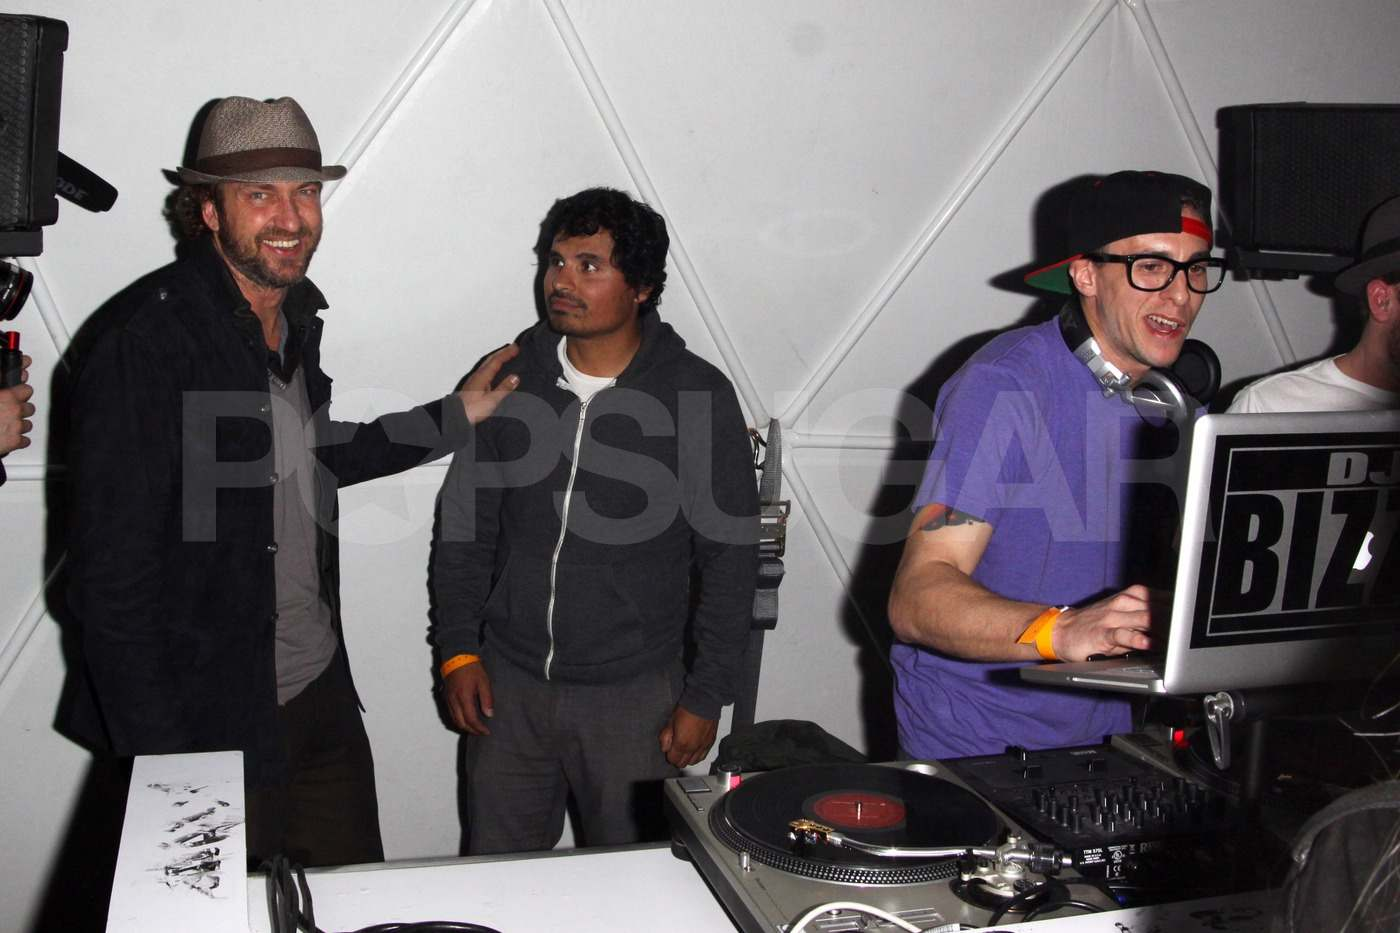 Gerard Butler stayed dry in an igloo during GenArt's Coachella afterparty on Friday.